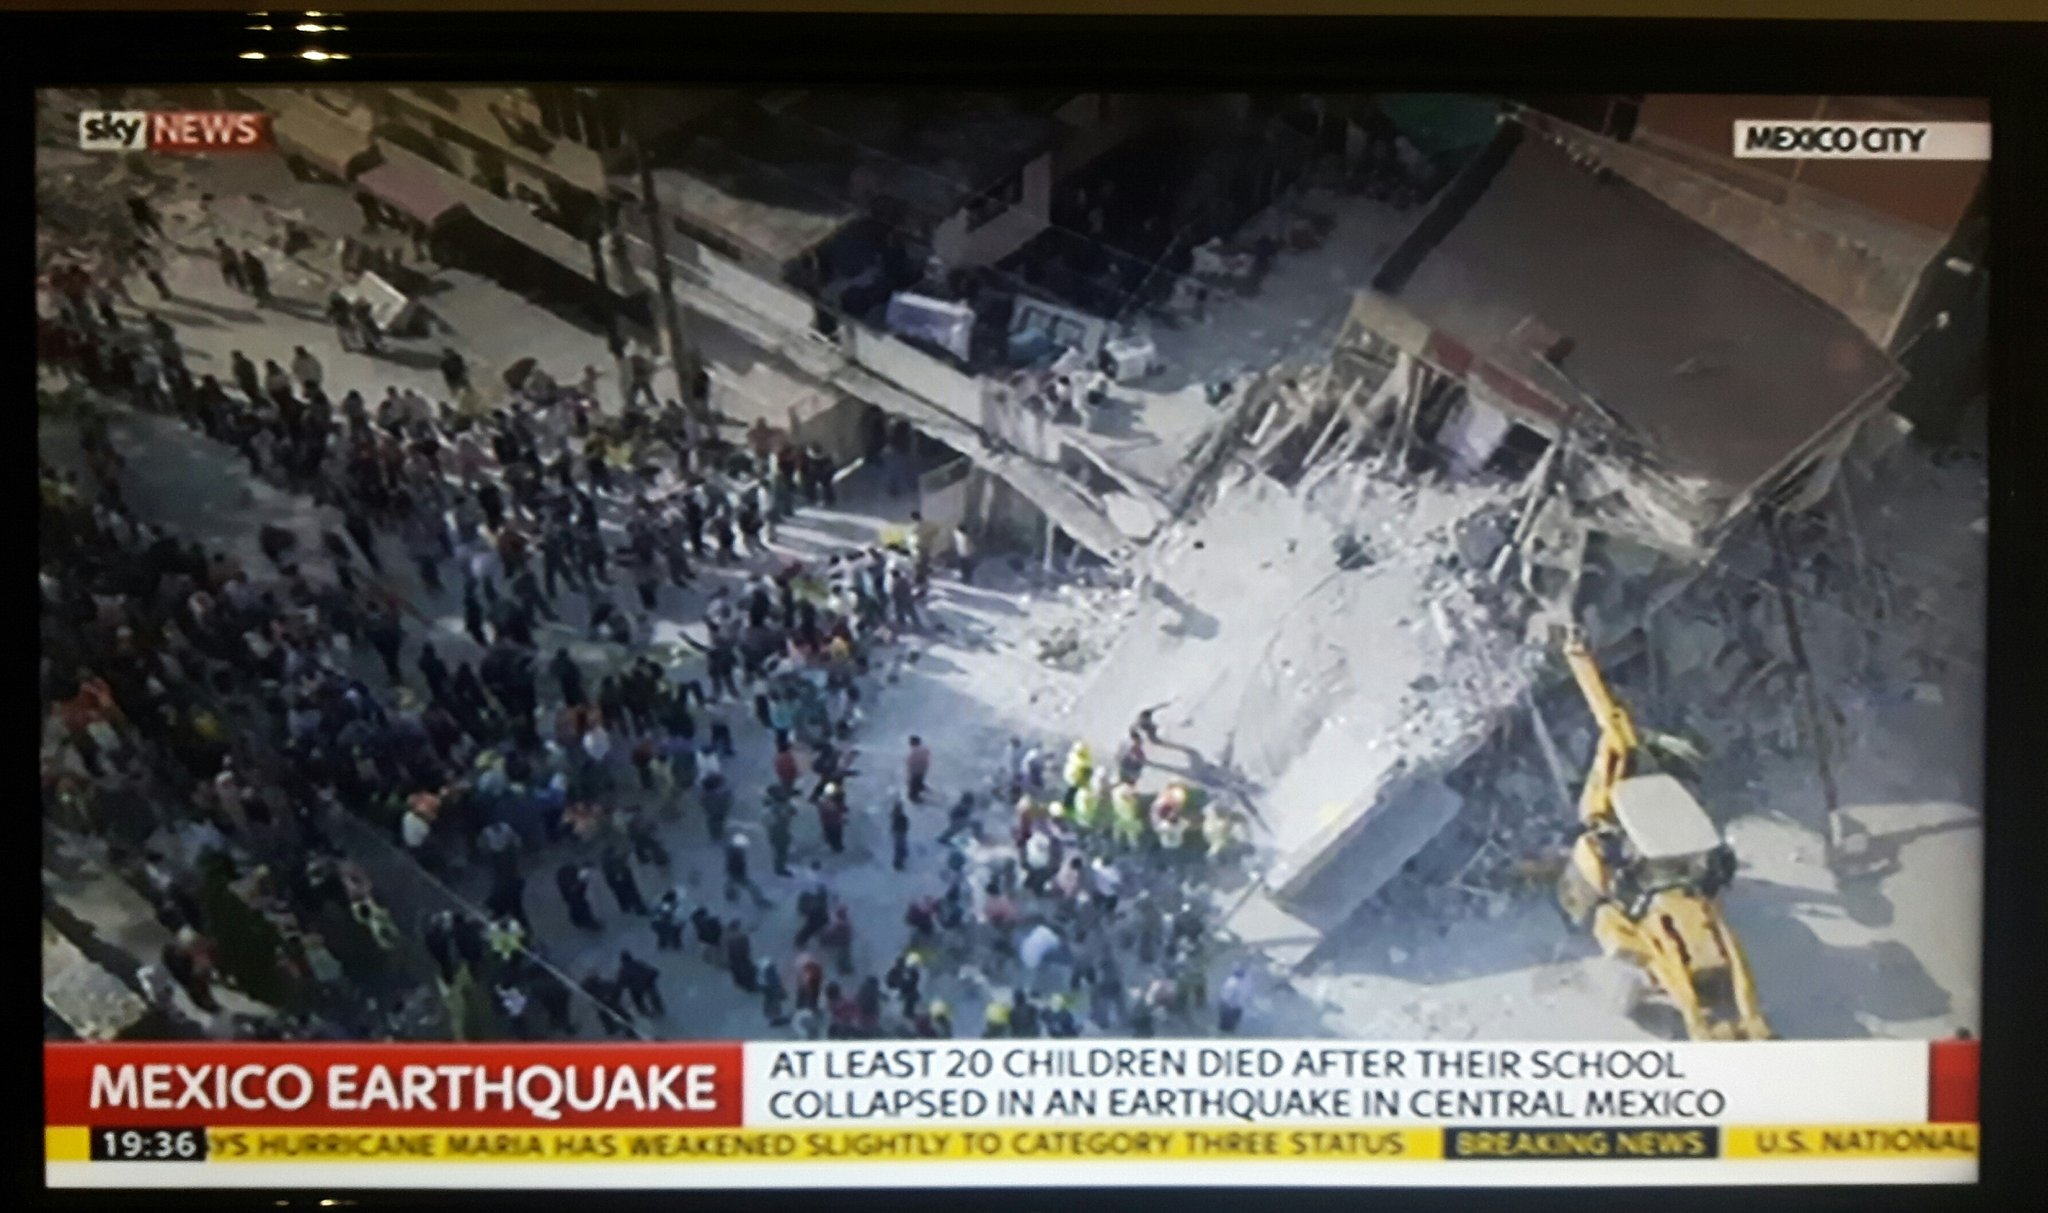 Sky News - At least 20 children died after their school collapsed in an earthquake in central Mexico https://t.co/F4r12XMbLO